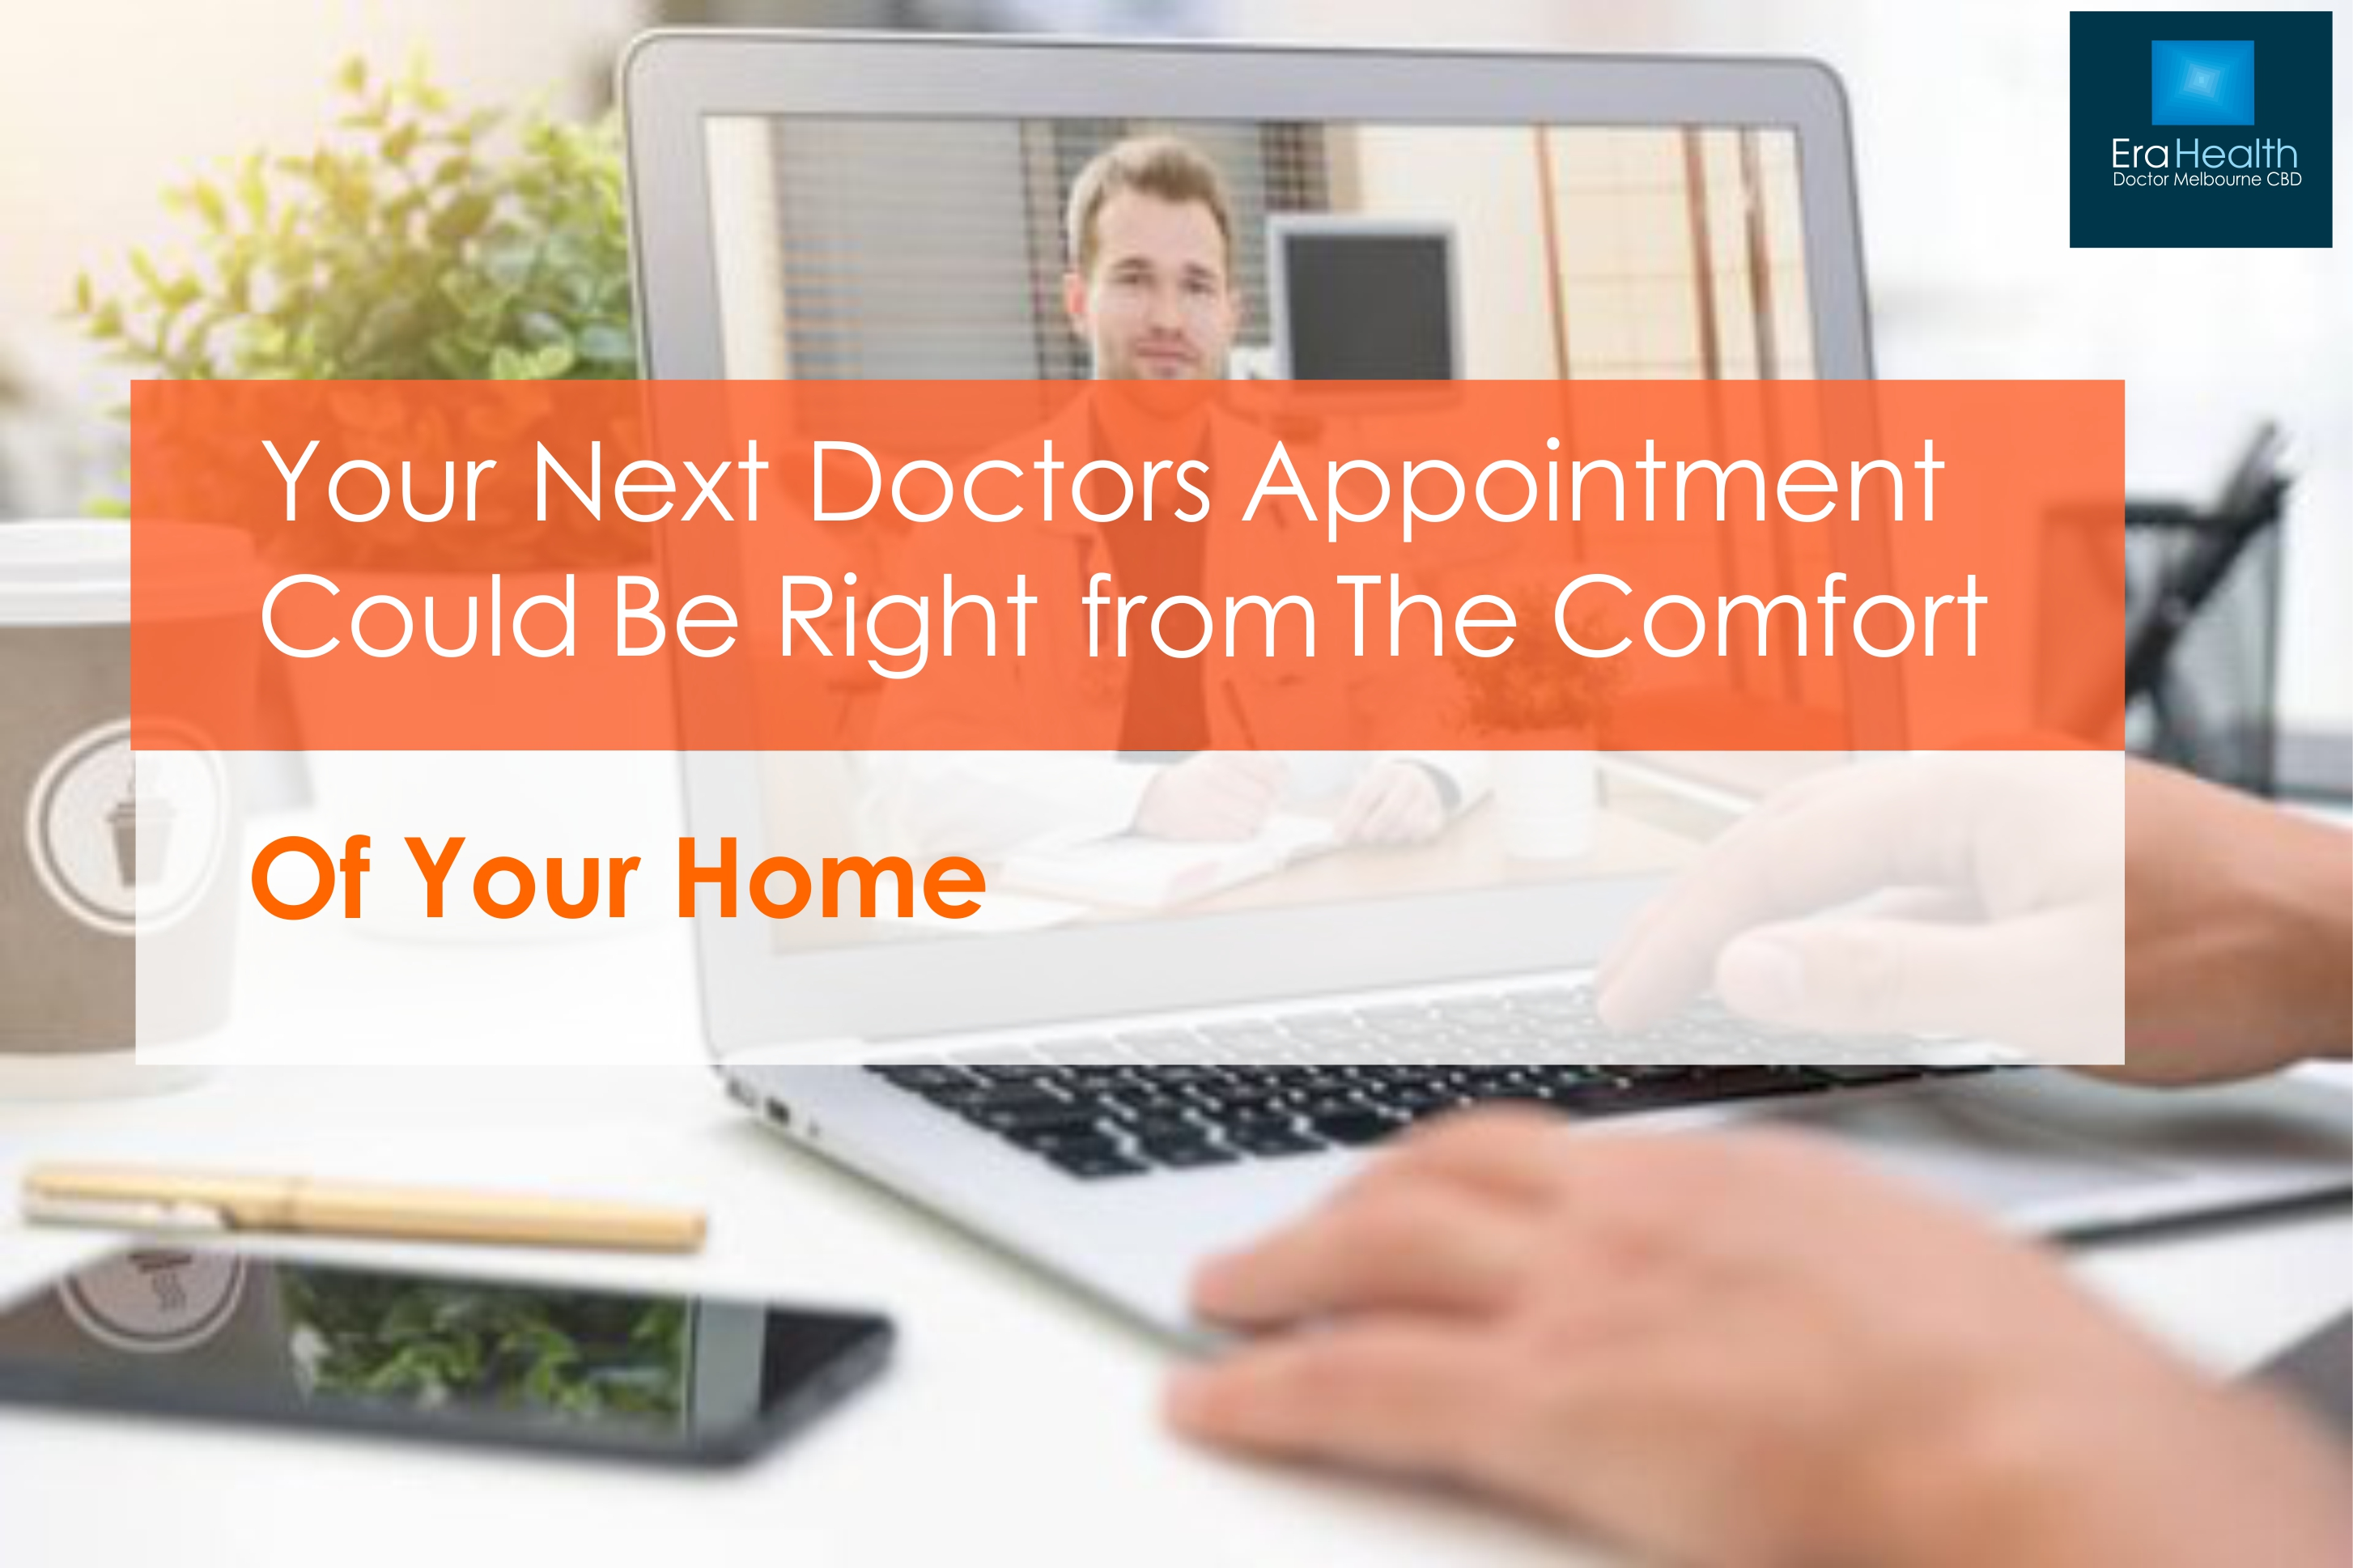 Telehealth appointments from your Home